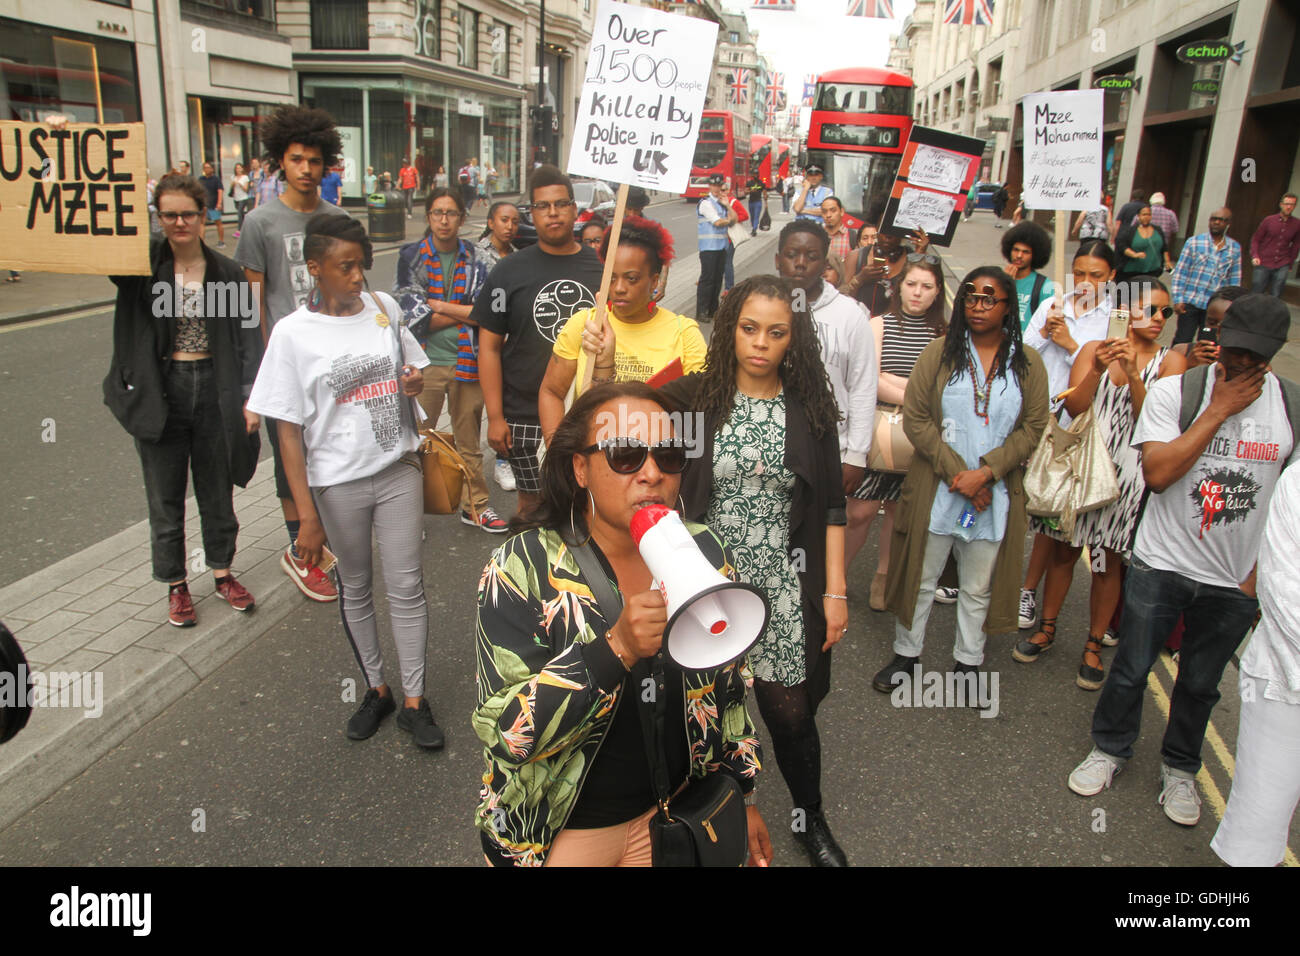 London, UK. 17th July, 2016.: Ava Moran speaks about Mzee Mohammed through a mega phone on Oxford Street. Black - Stock Image